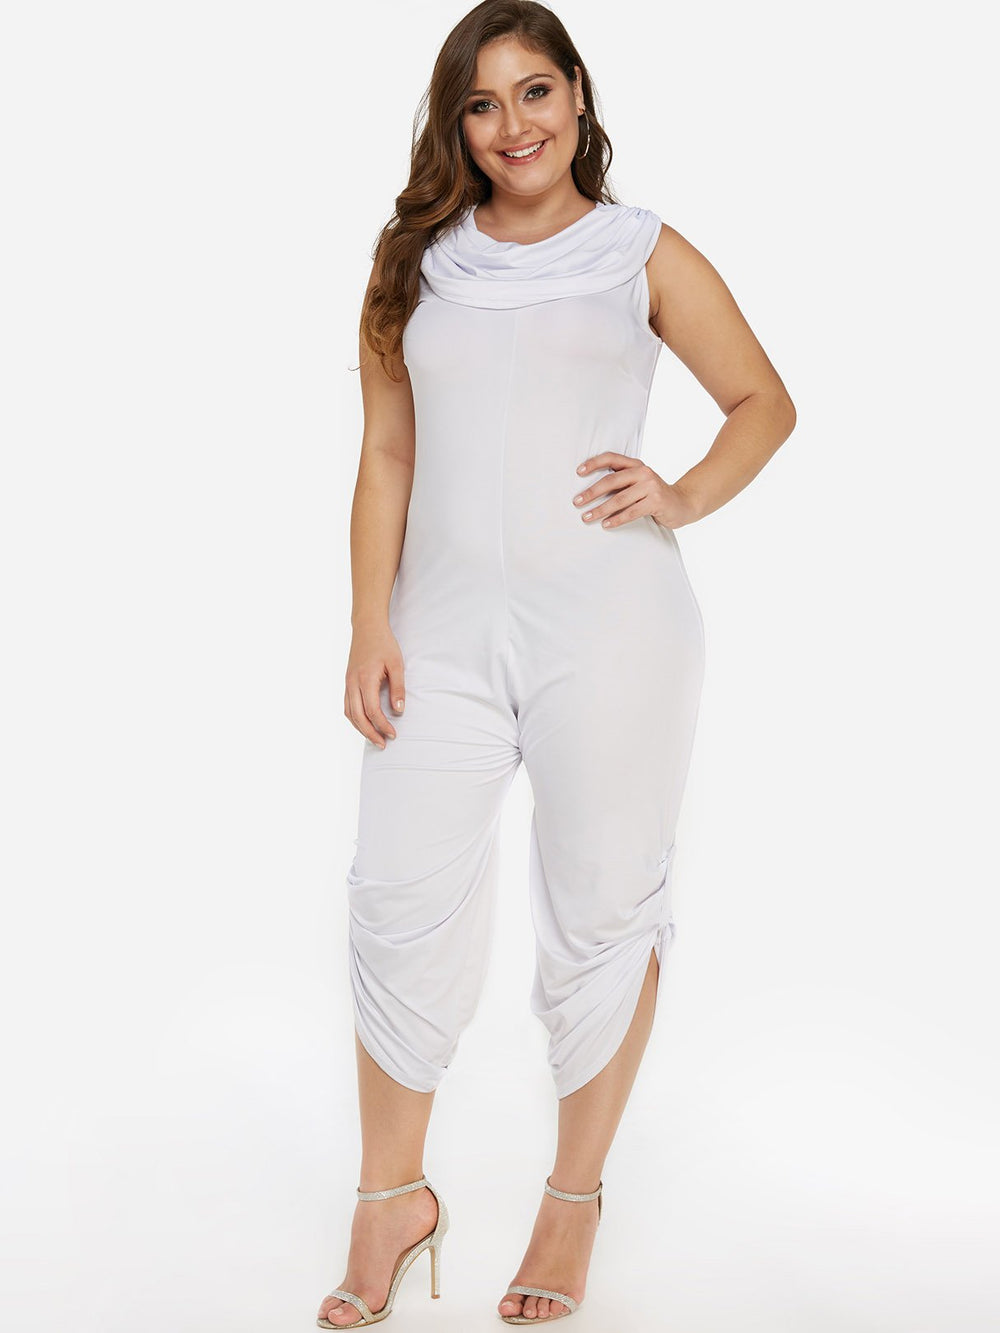 Ladies White Plus Size Bottoms